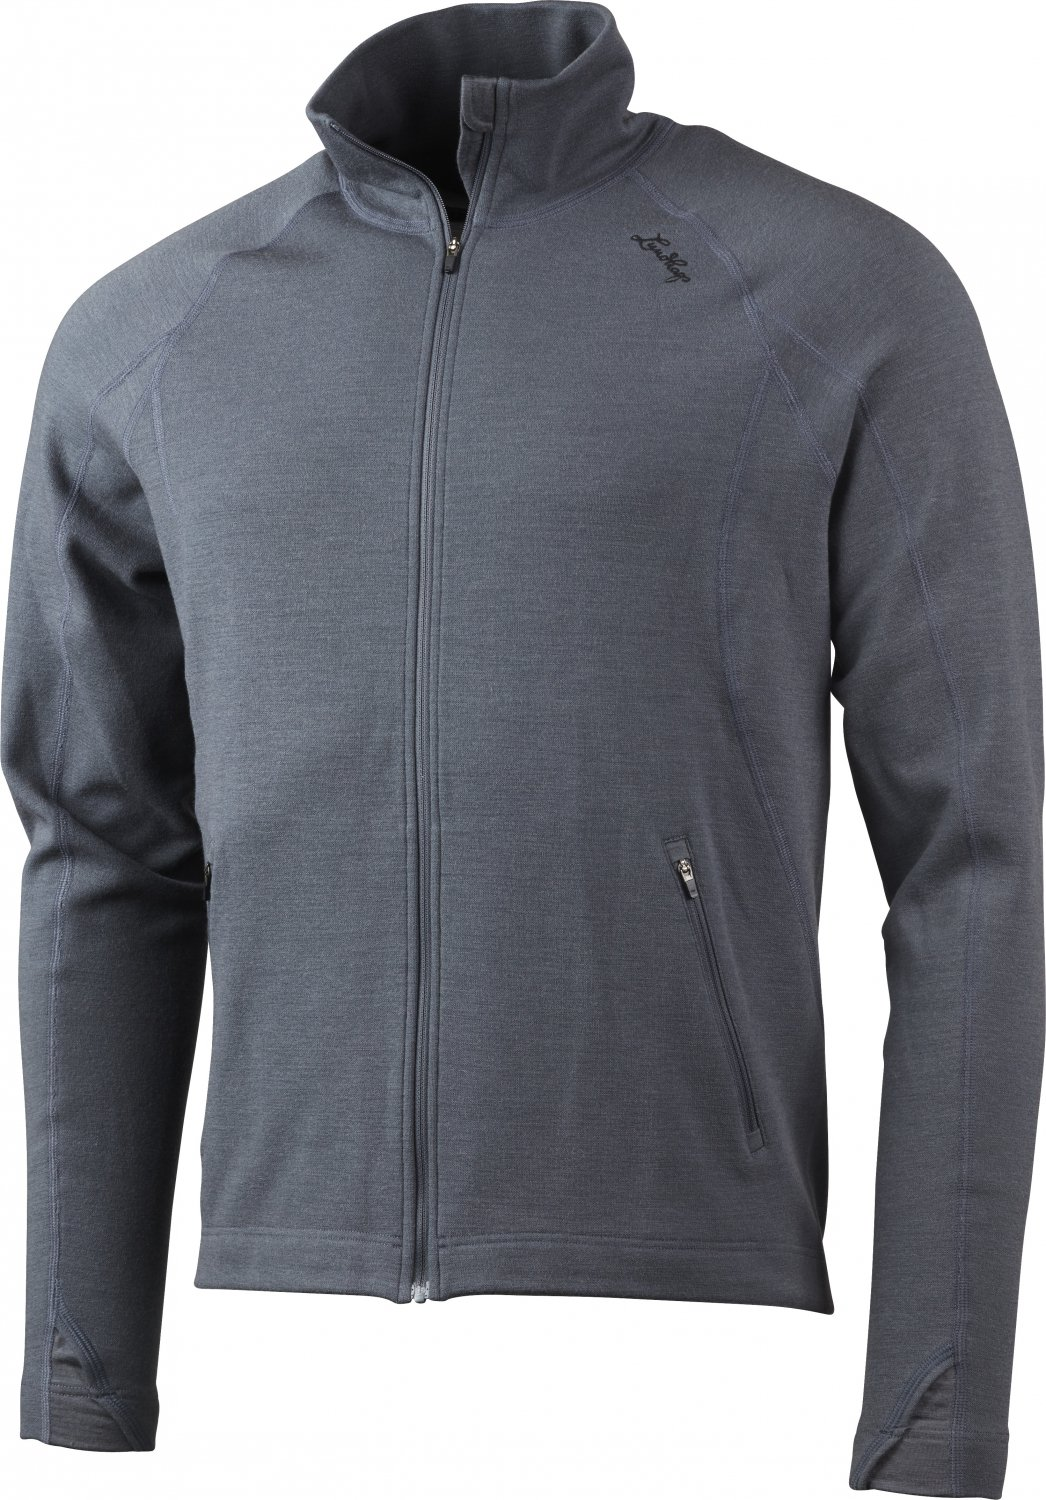 Lundhags Merino MS Full Zip granite